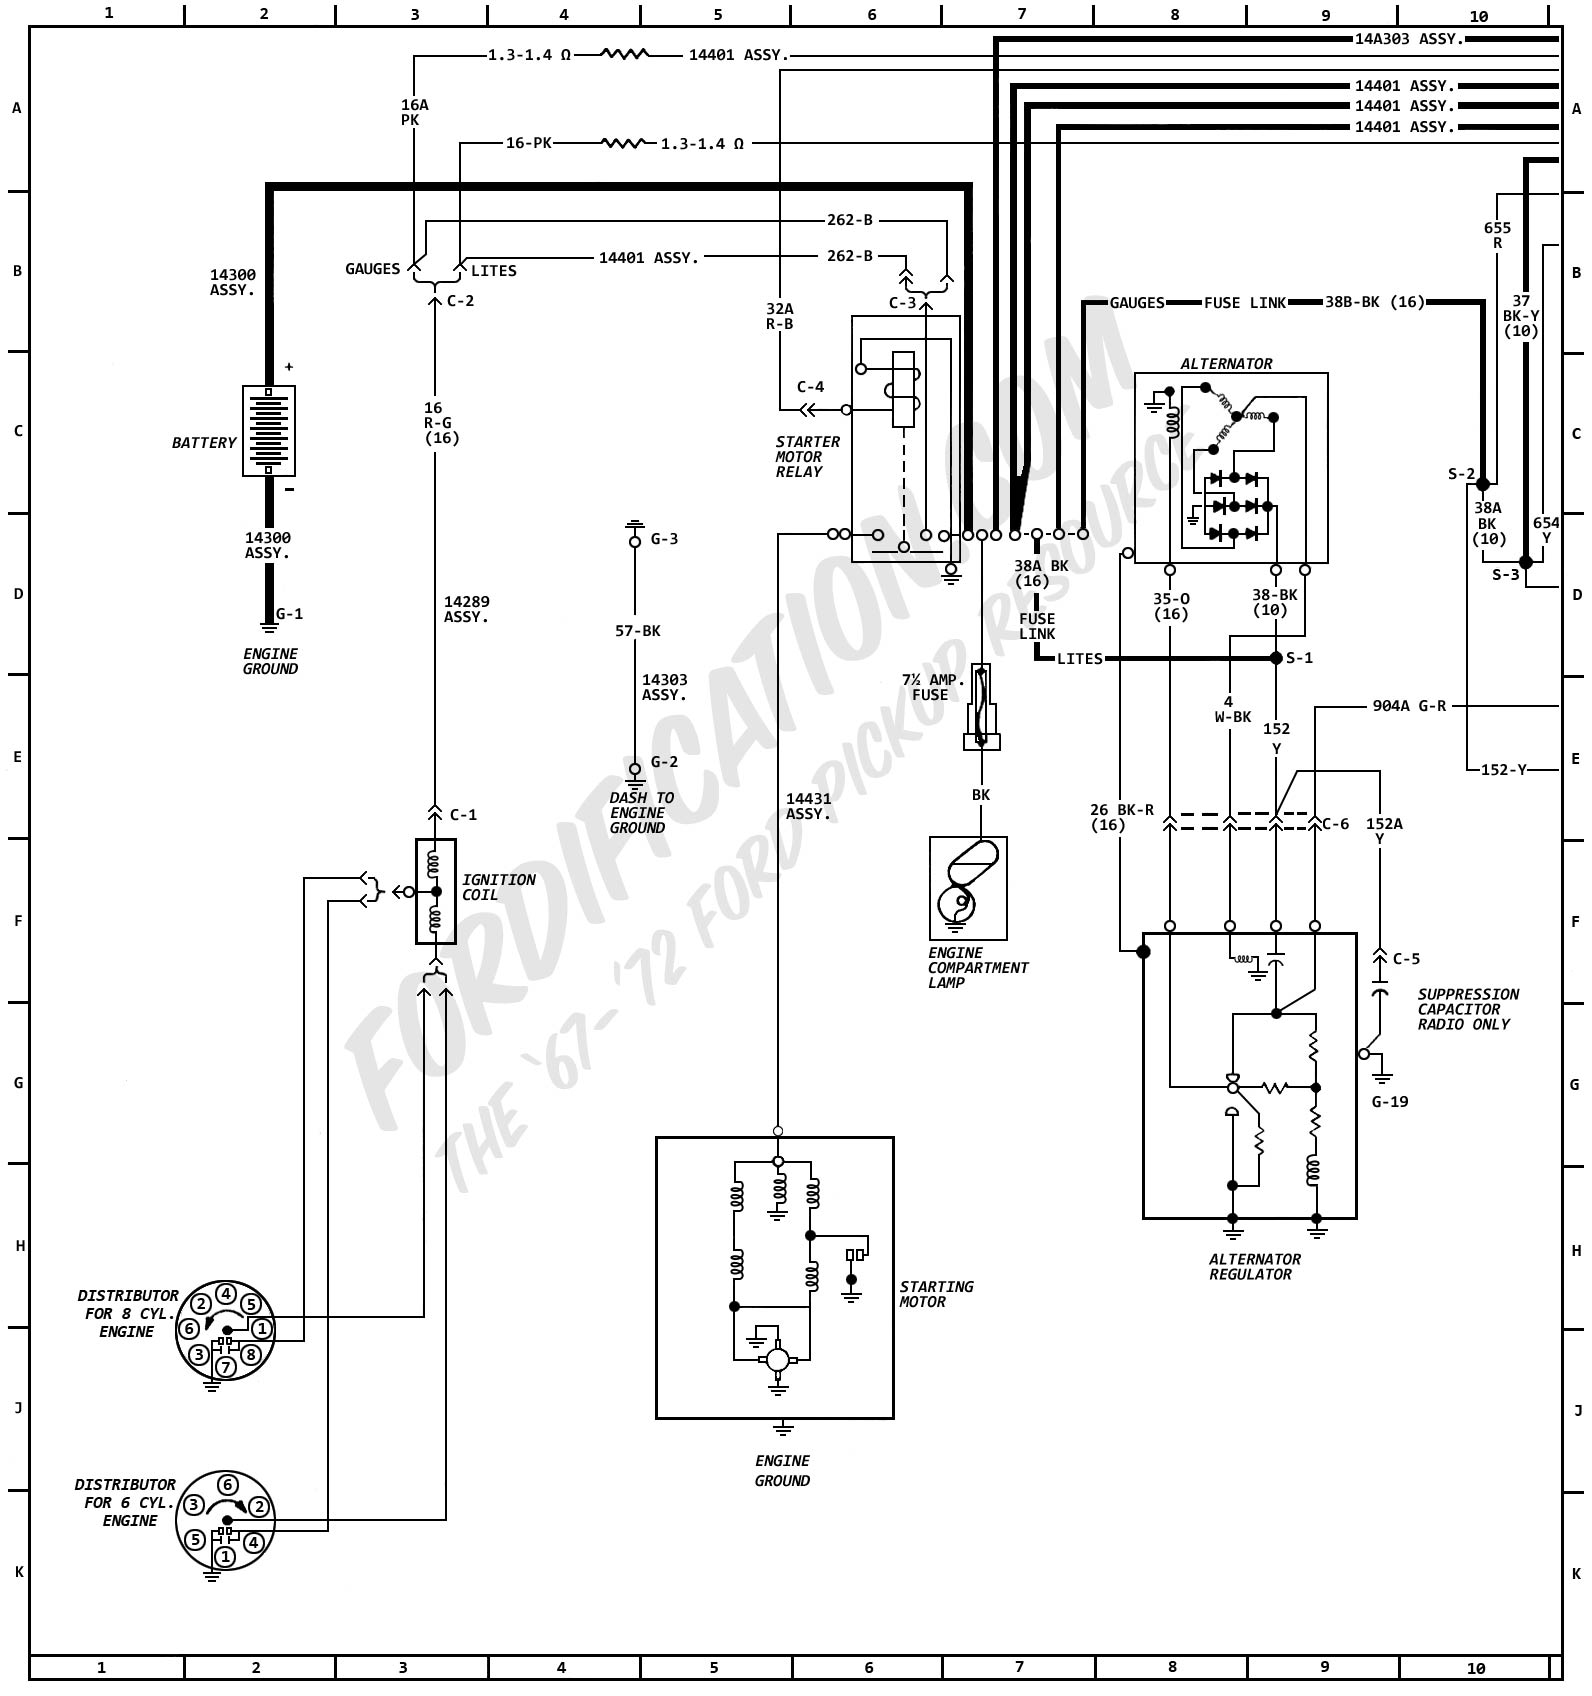 1972MasterWiring_01 1972 ford truck wiring diagrams fordification com electrical wiring diagram ford courier at gsmportal.co